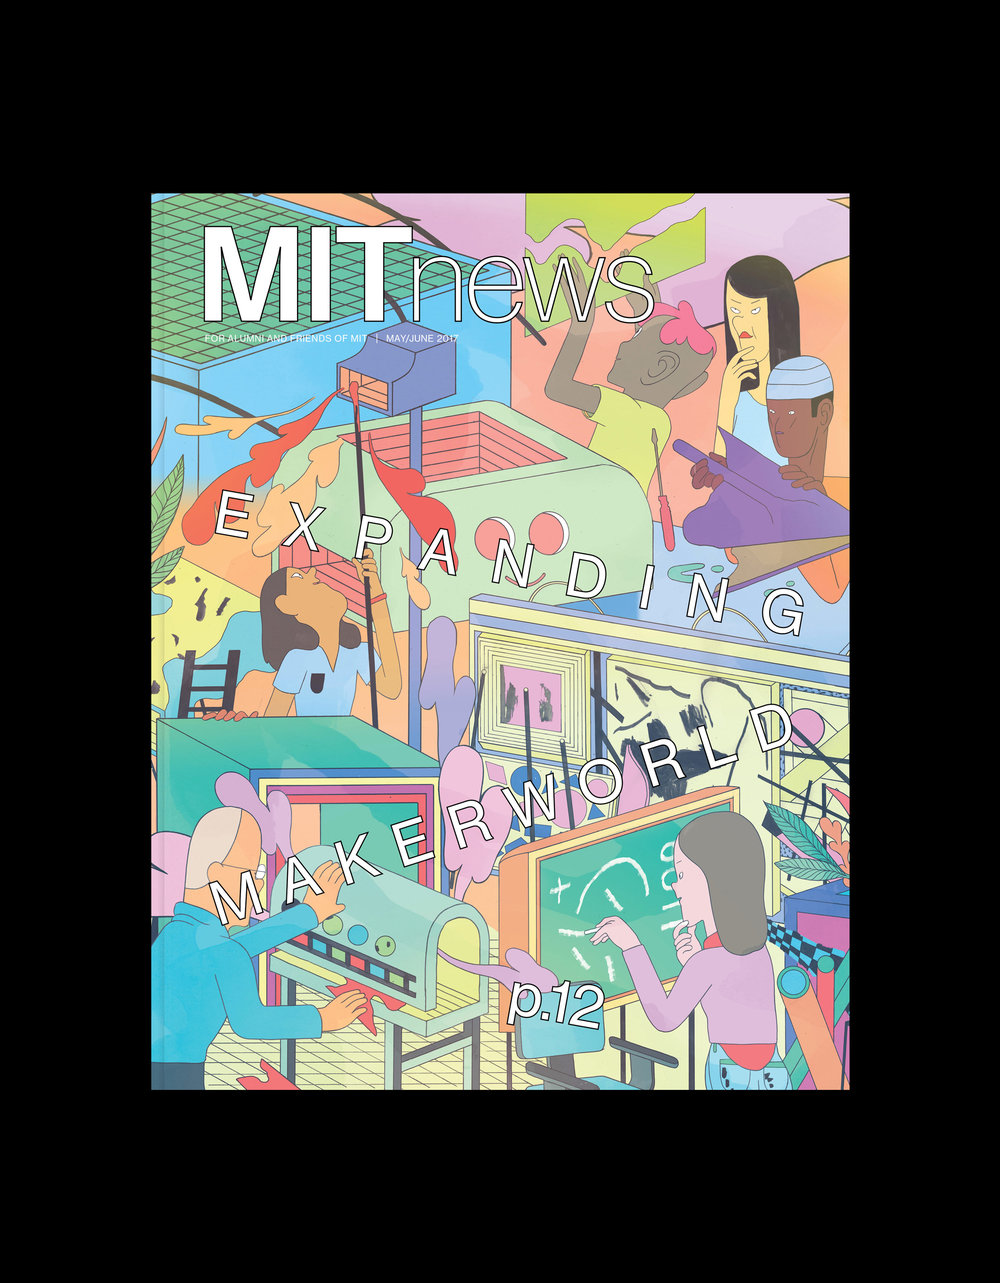 MIT News Cover May/June 2017